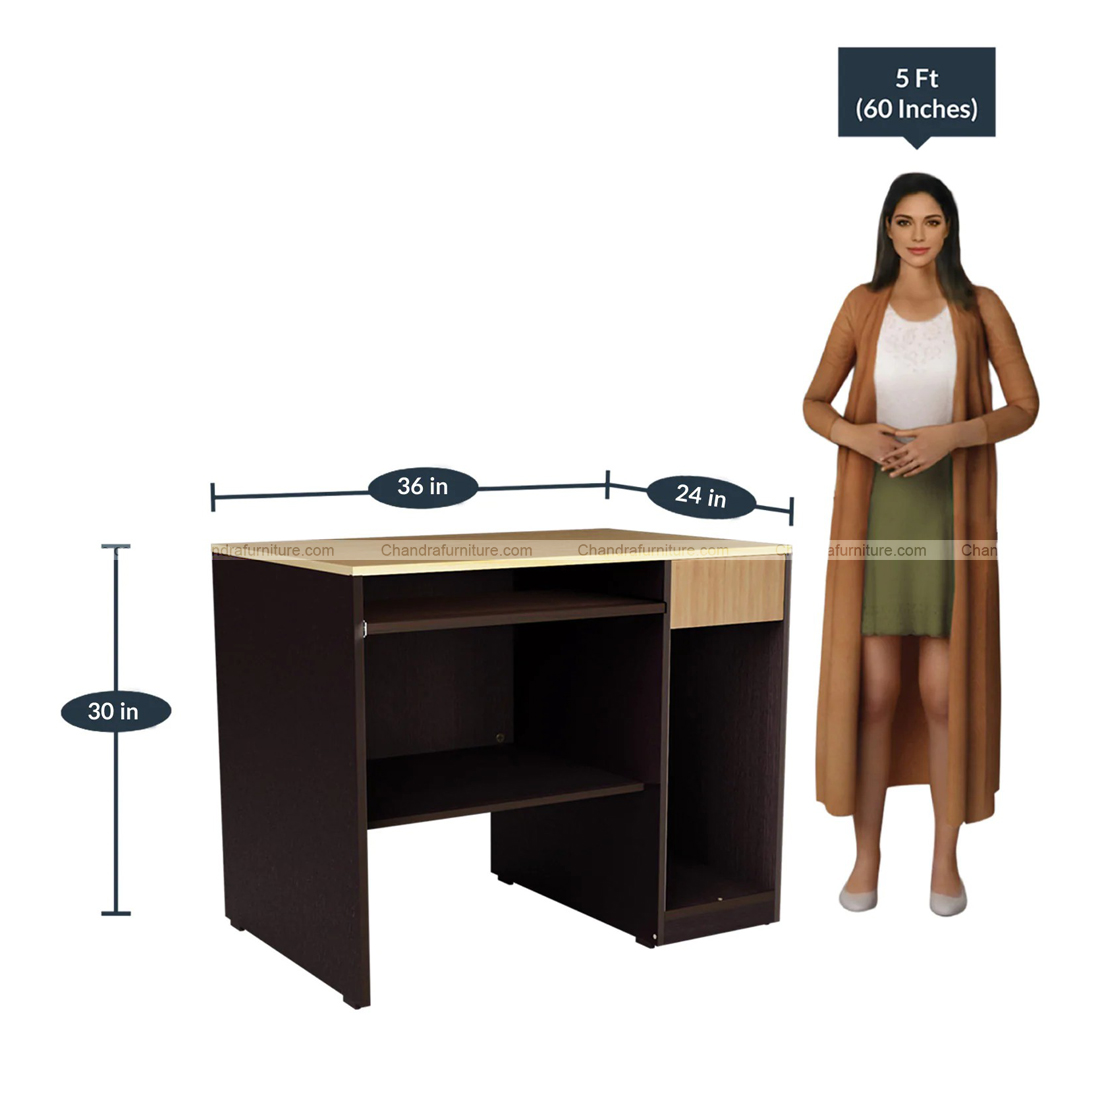 Chandra Furniture Study & Laptop Table In Wenge Finish